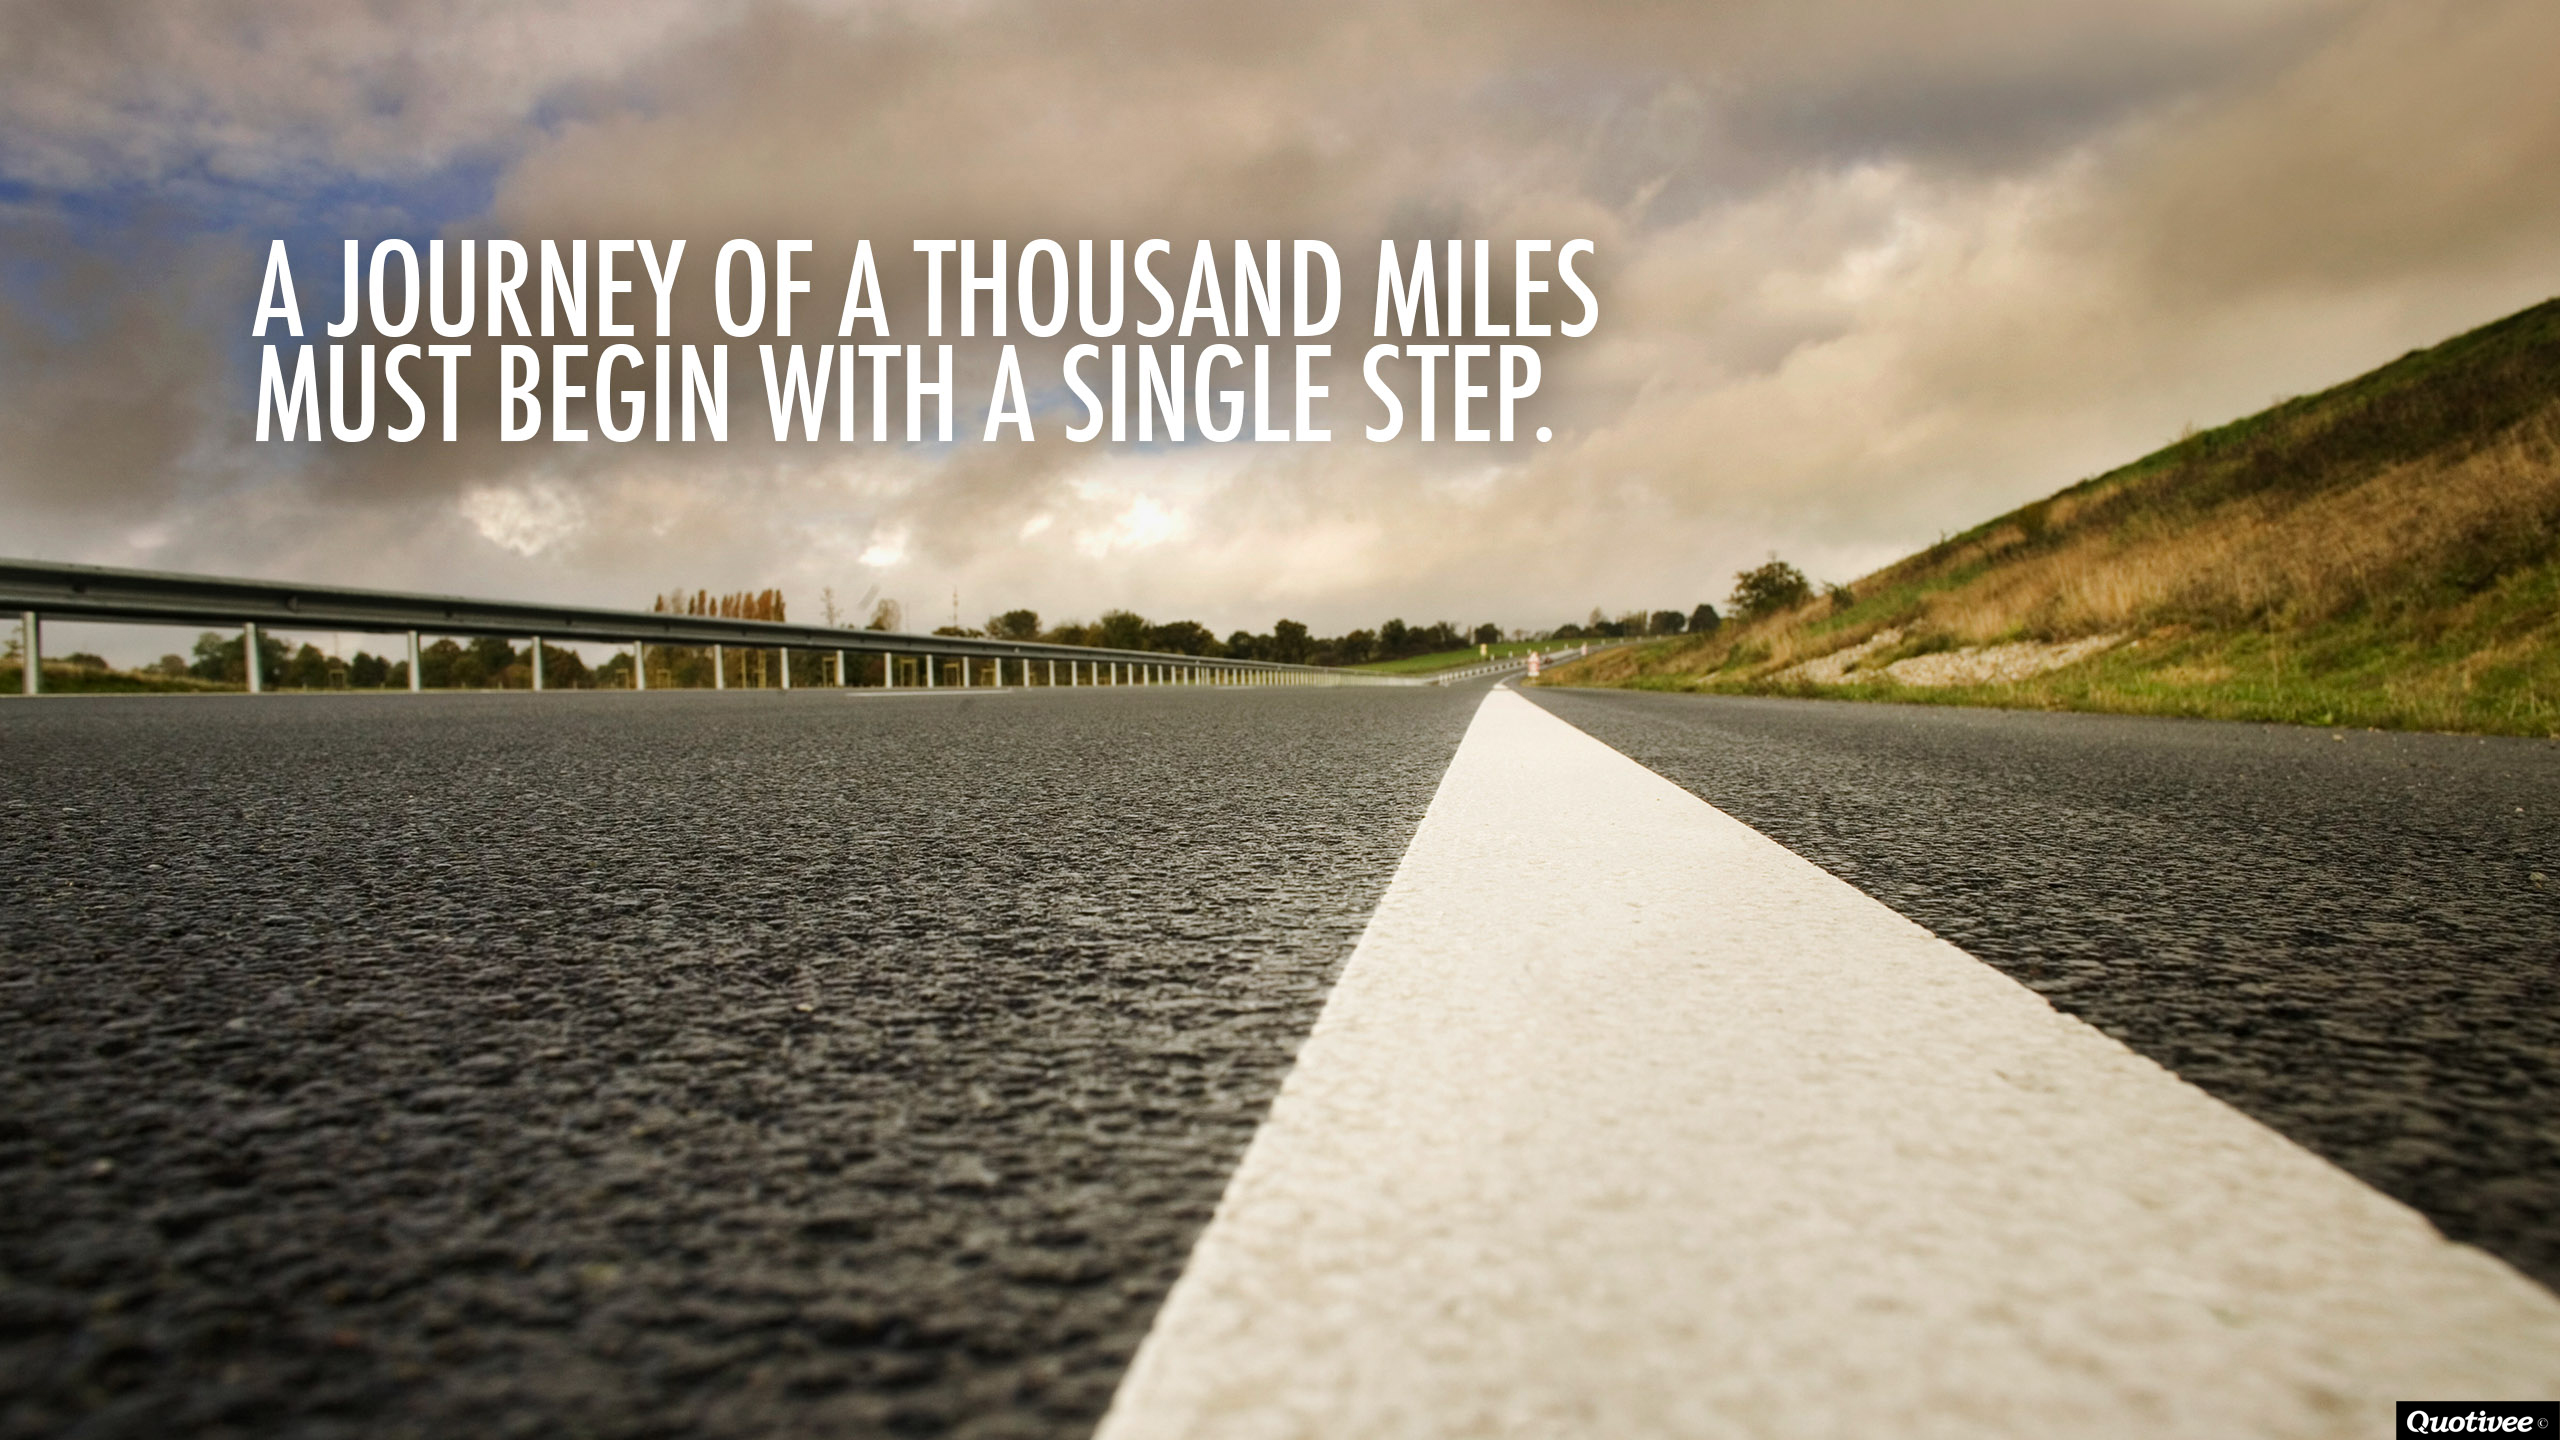 A journey of a thousand miles begins with one step essay help